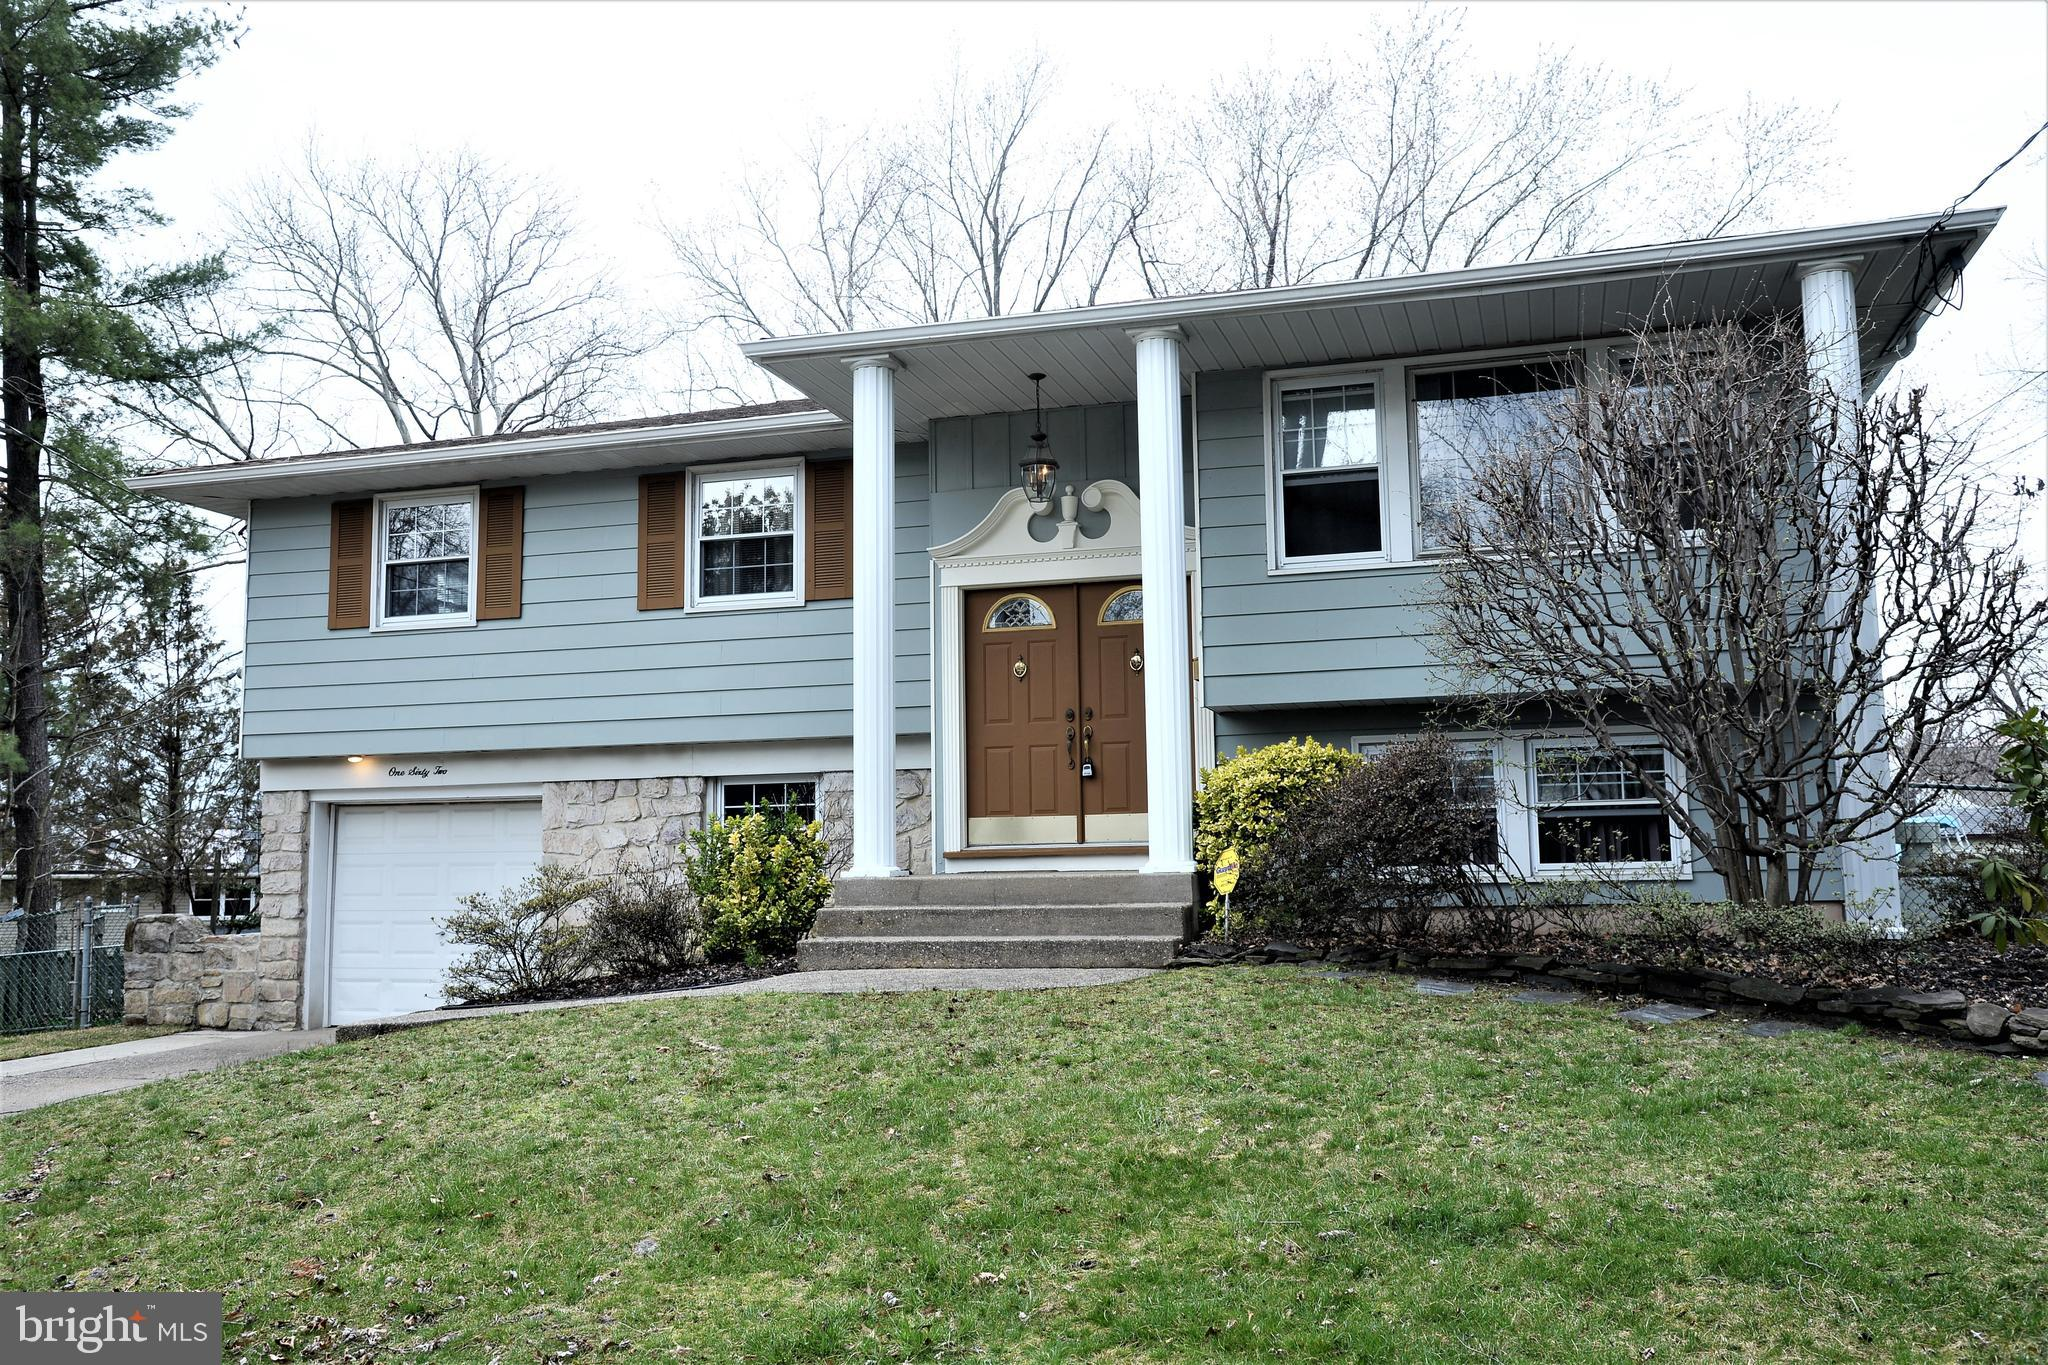 162 CENTRAL COURT, WOODBURY HEIGHTS, NJ 08097